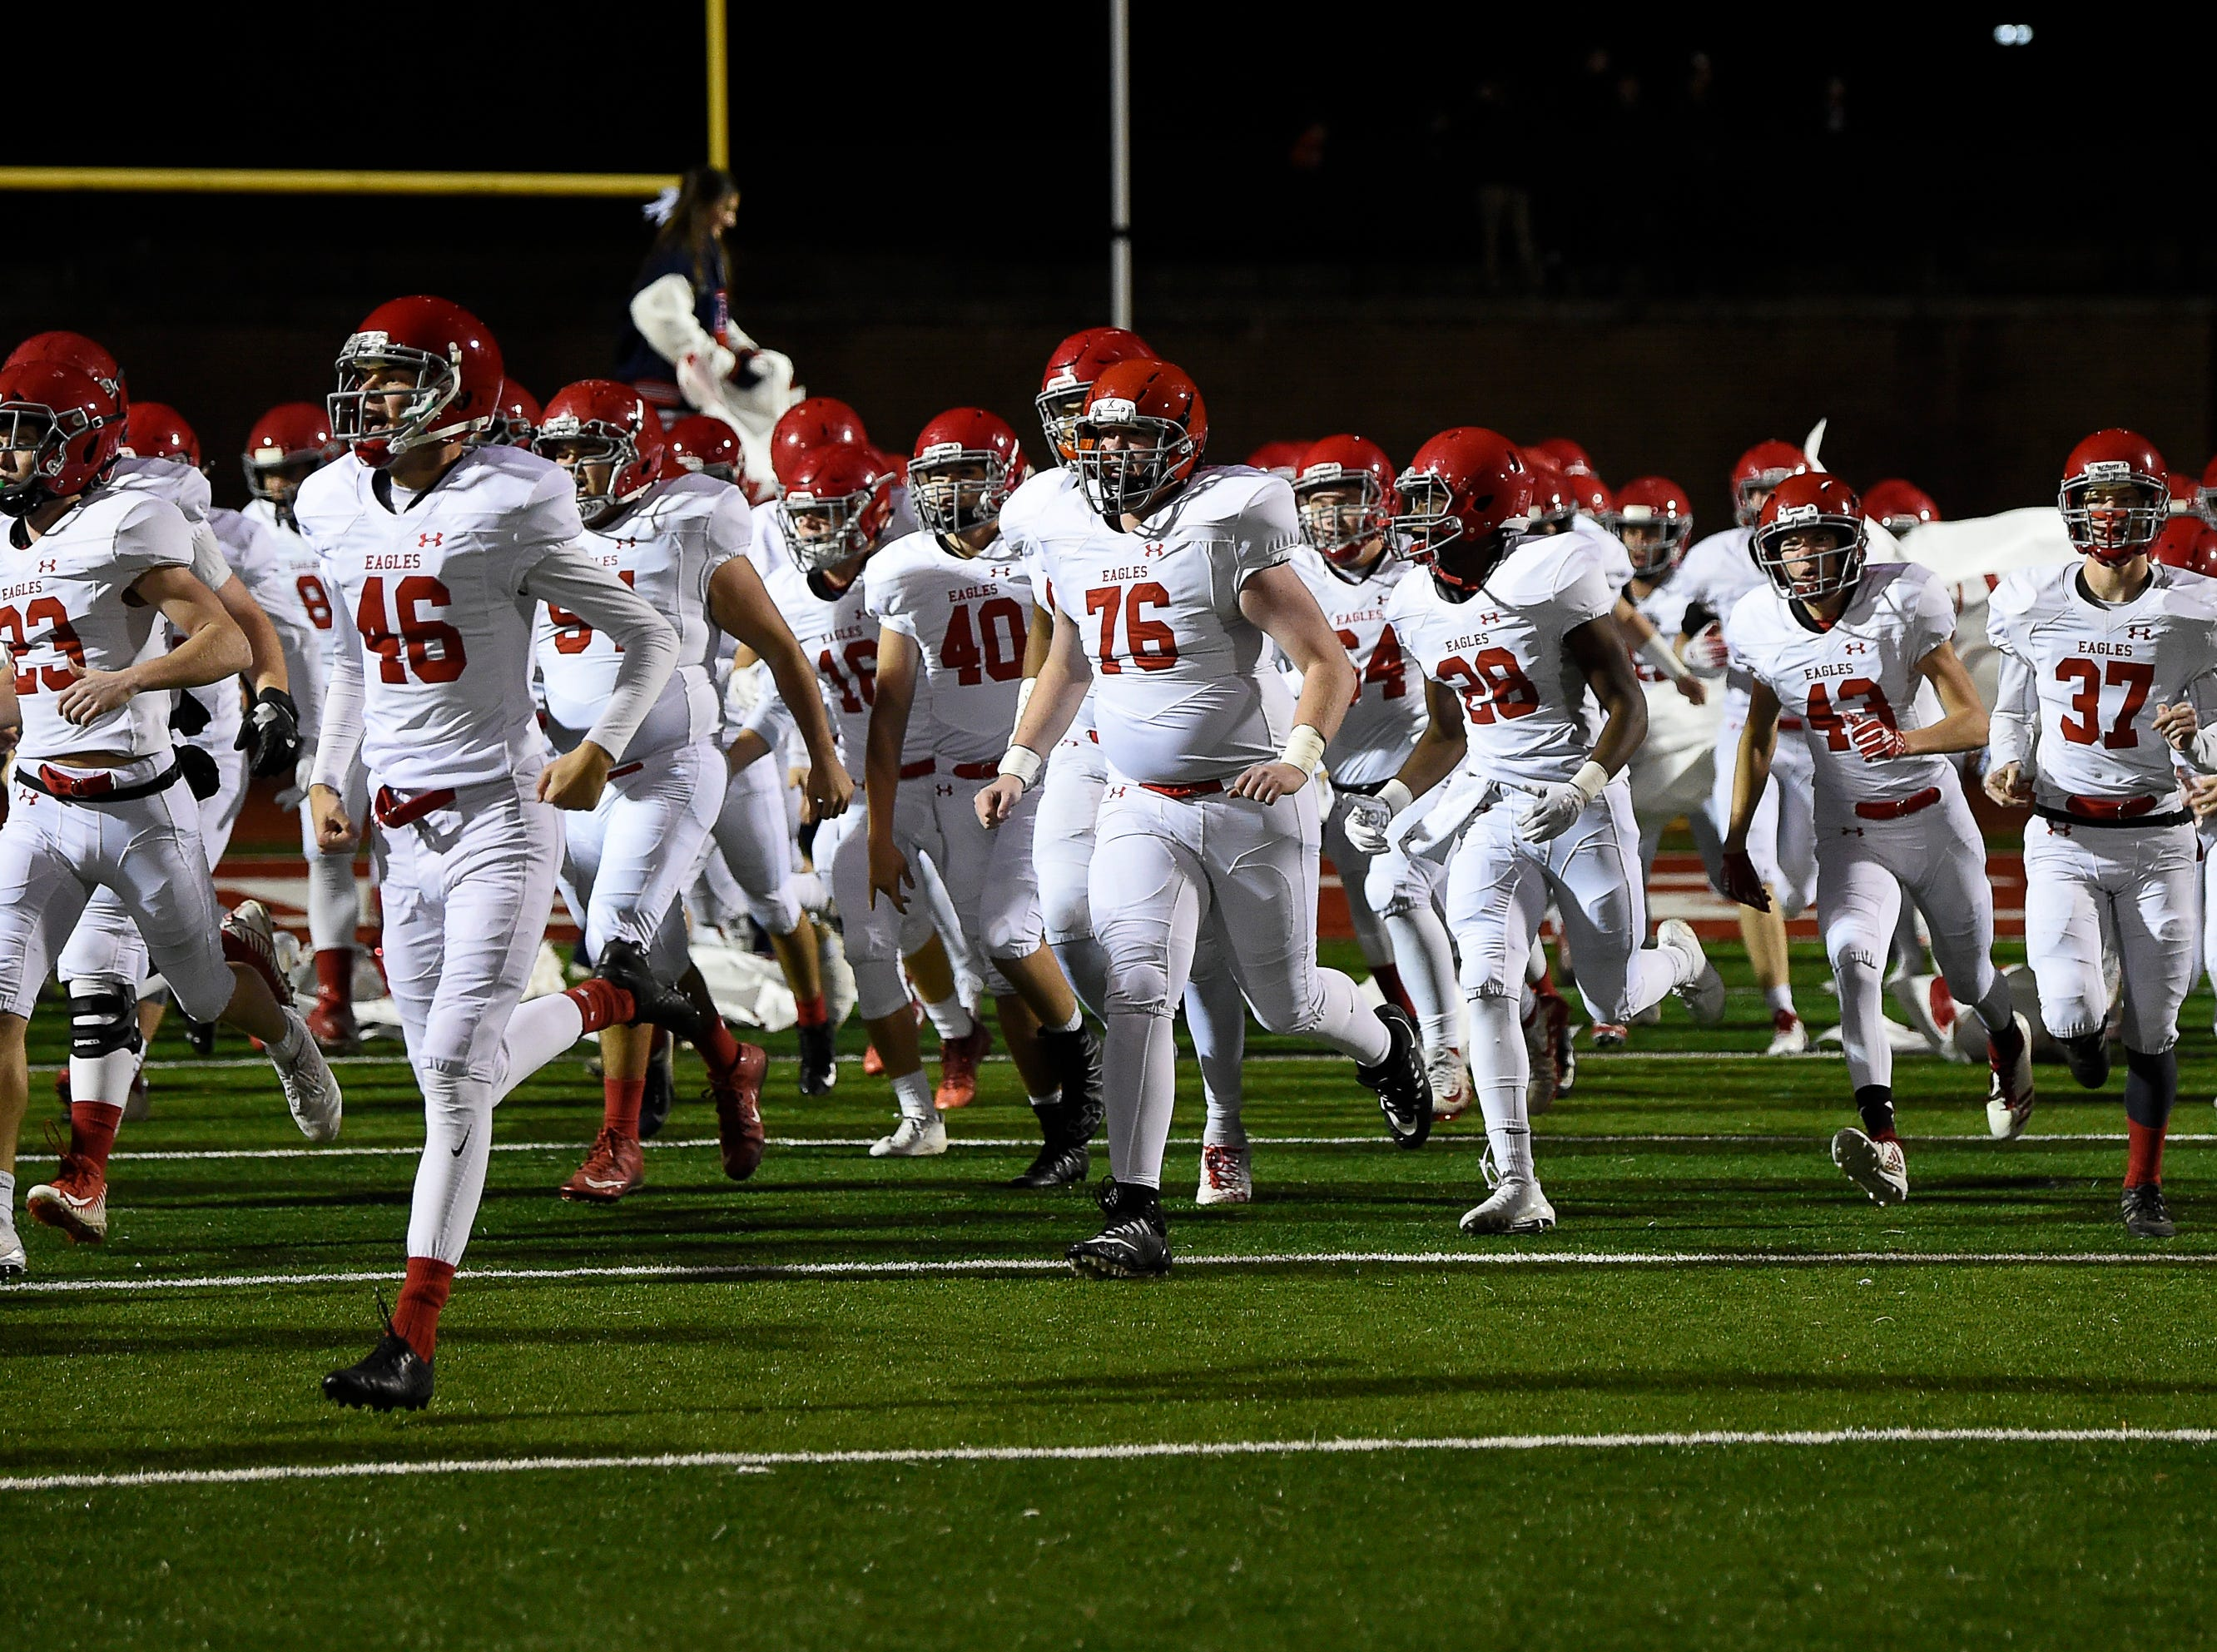 Brentwood Academy takes the field for their 2018 Division II Class AAA State Football Playoff game against MBA at Montgomery Bell Academy Friday, Nov. 16, 2018, in Nashville, Tenn.